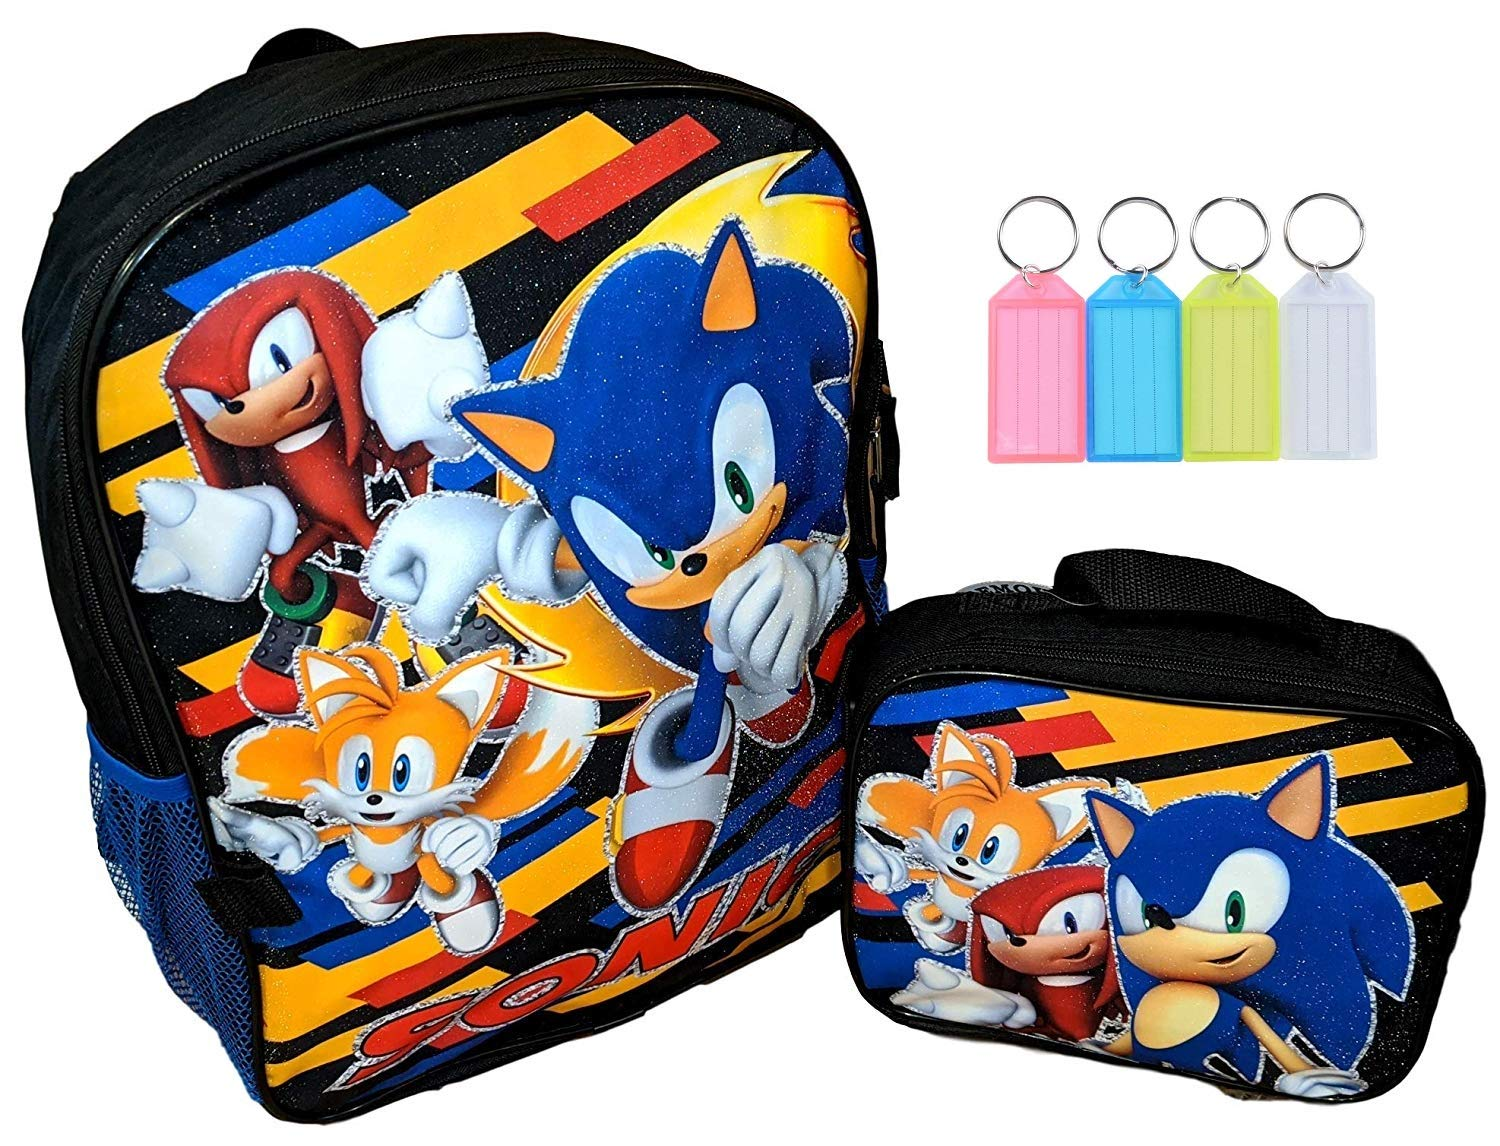 Sonic The Hedgehog 16 Inch Backpack School Supplies Set For Kids Buy Online In Bahamas F A B Products In Bahamas See Prices Reviews And Free Delivery Over Bsd80 Desertcart